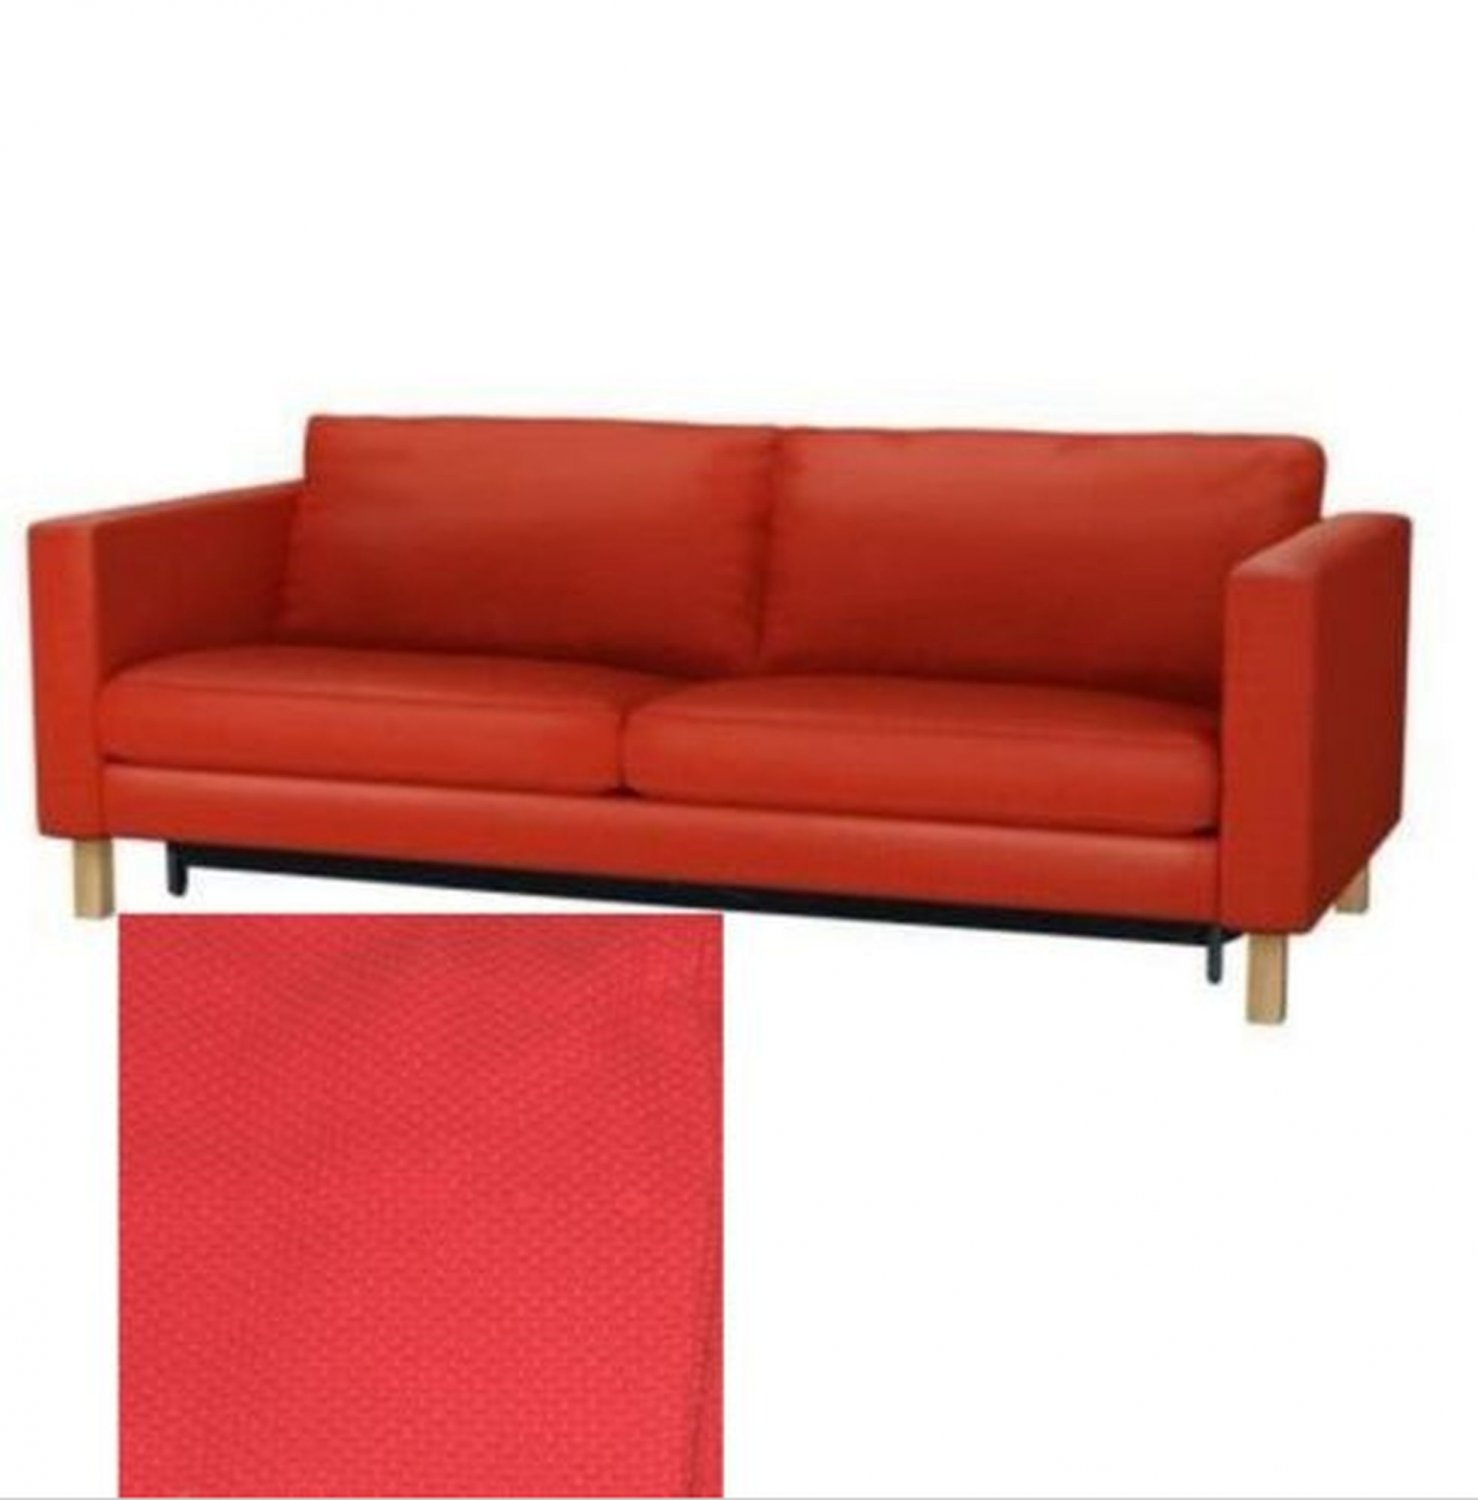 Ikea Karlstad Sofa Bed Sofabed Slipcover Cover Korndal Red Xmas